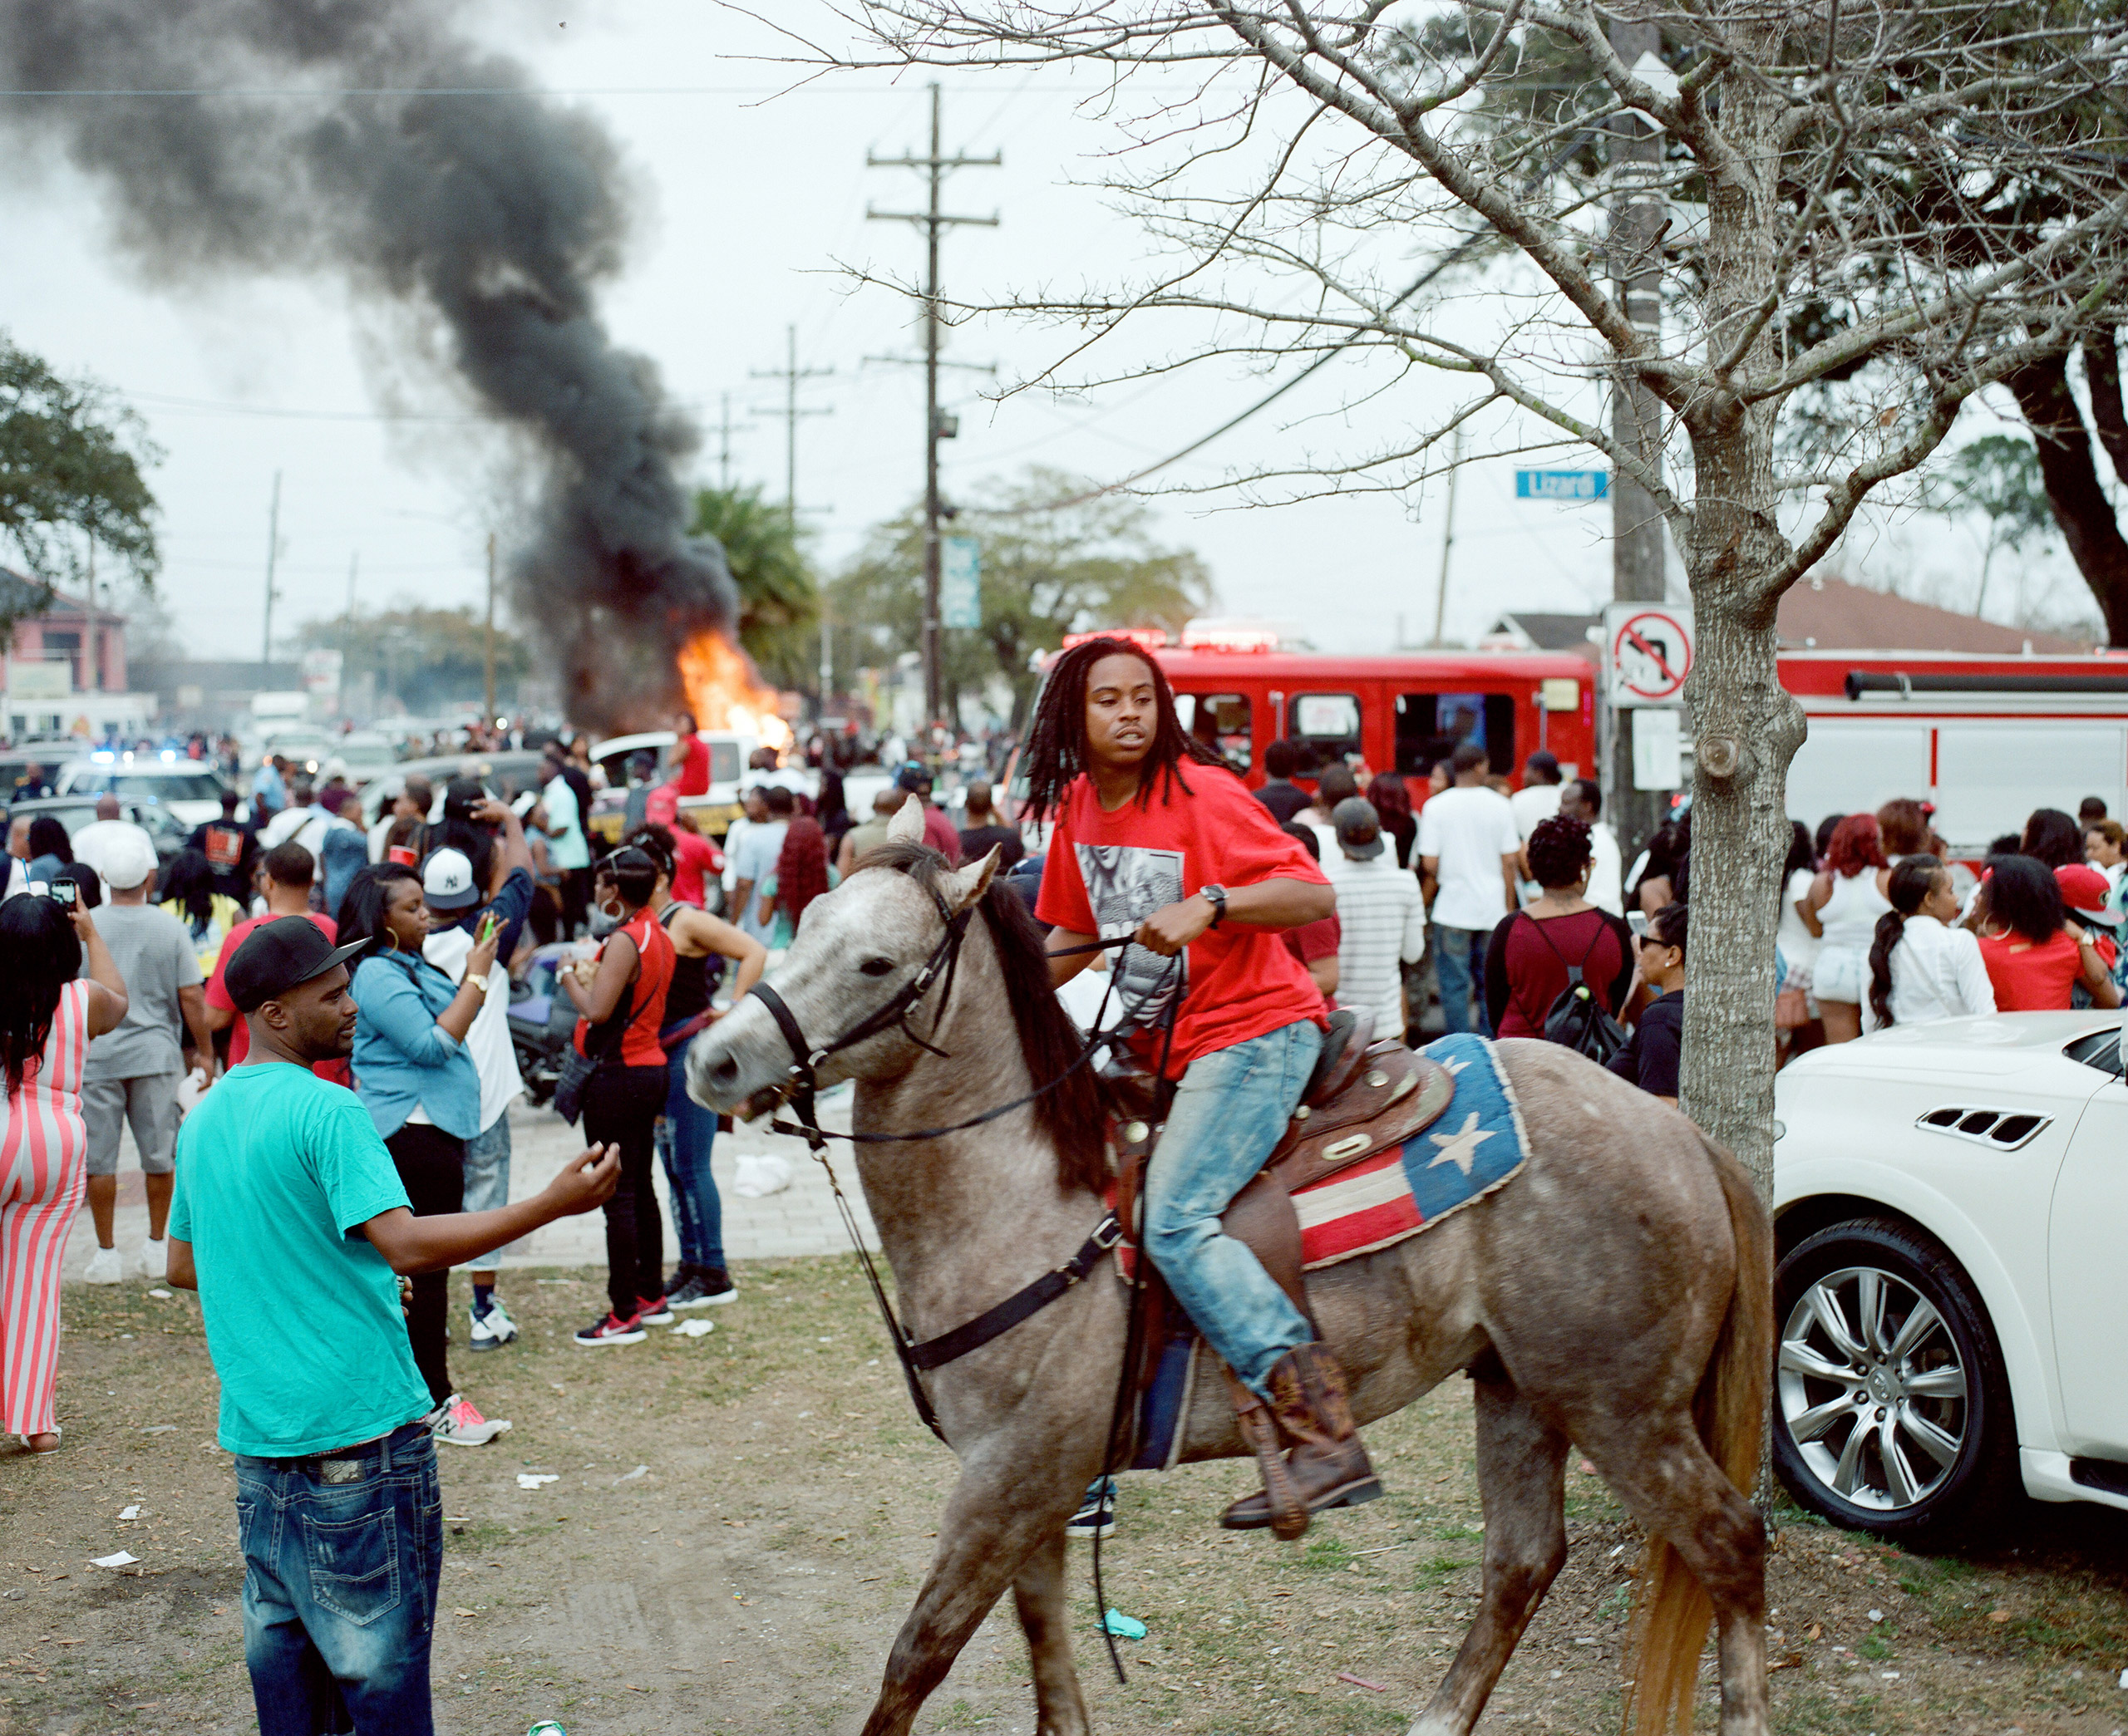 A young man on horseback at a Second Line moves away from a burning car in New Orleans, La. 2016